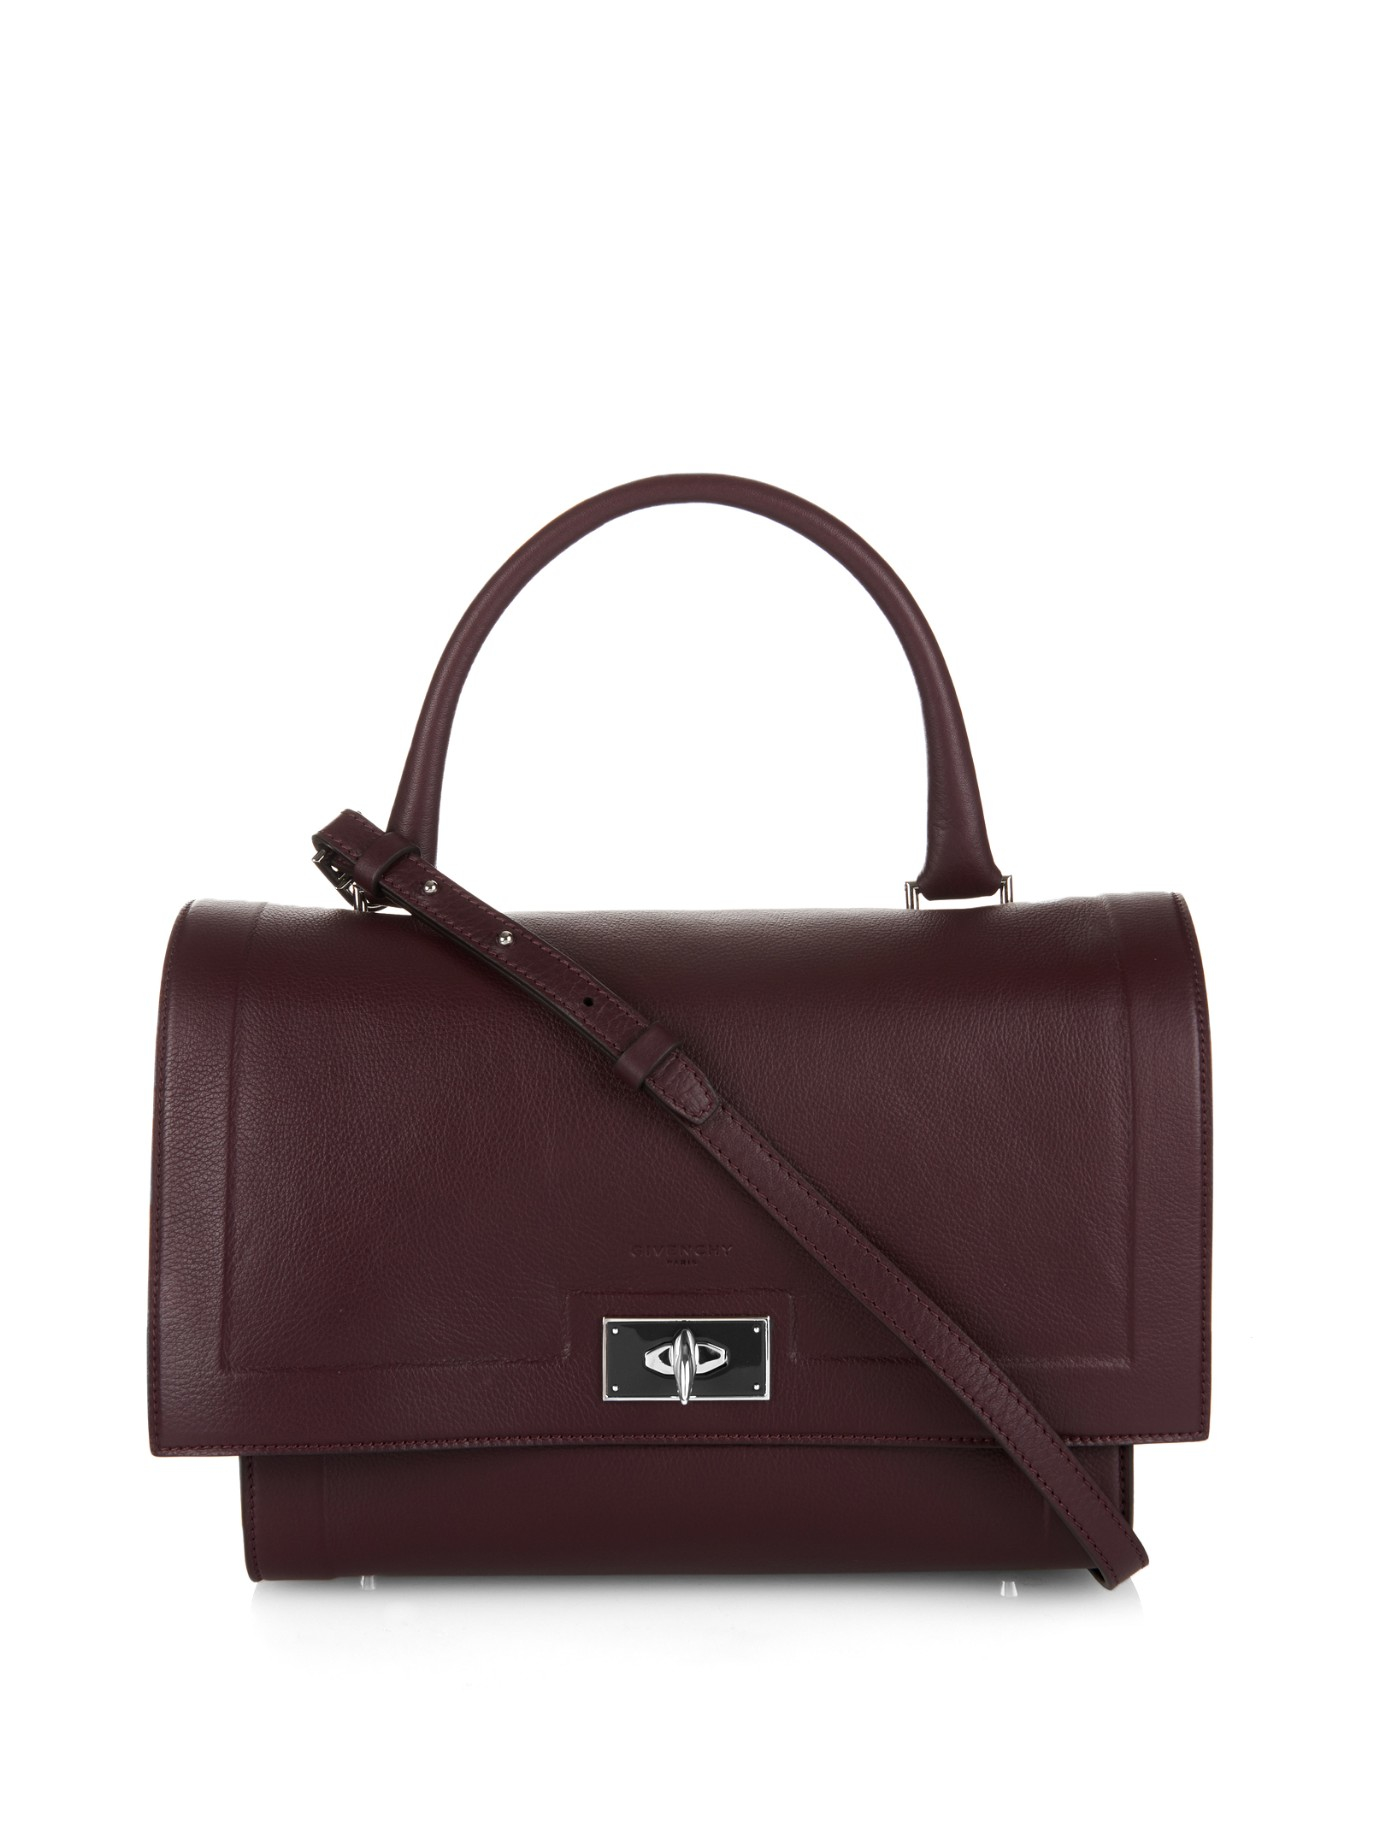 32a8368969a6 Lyst - Givenchy Shark Small Leather Tote in Purple